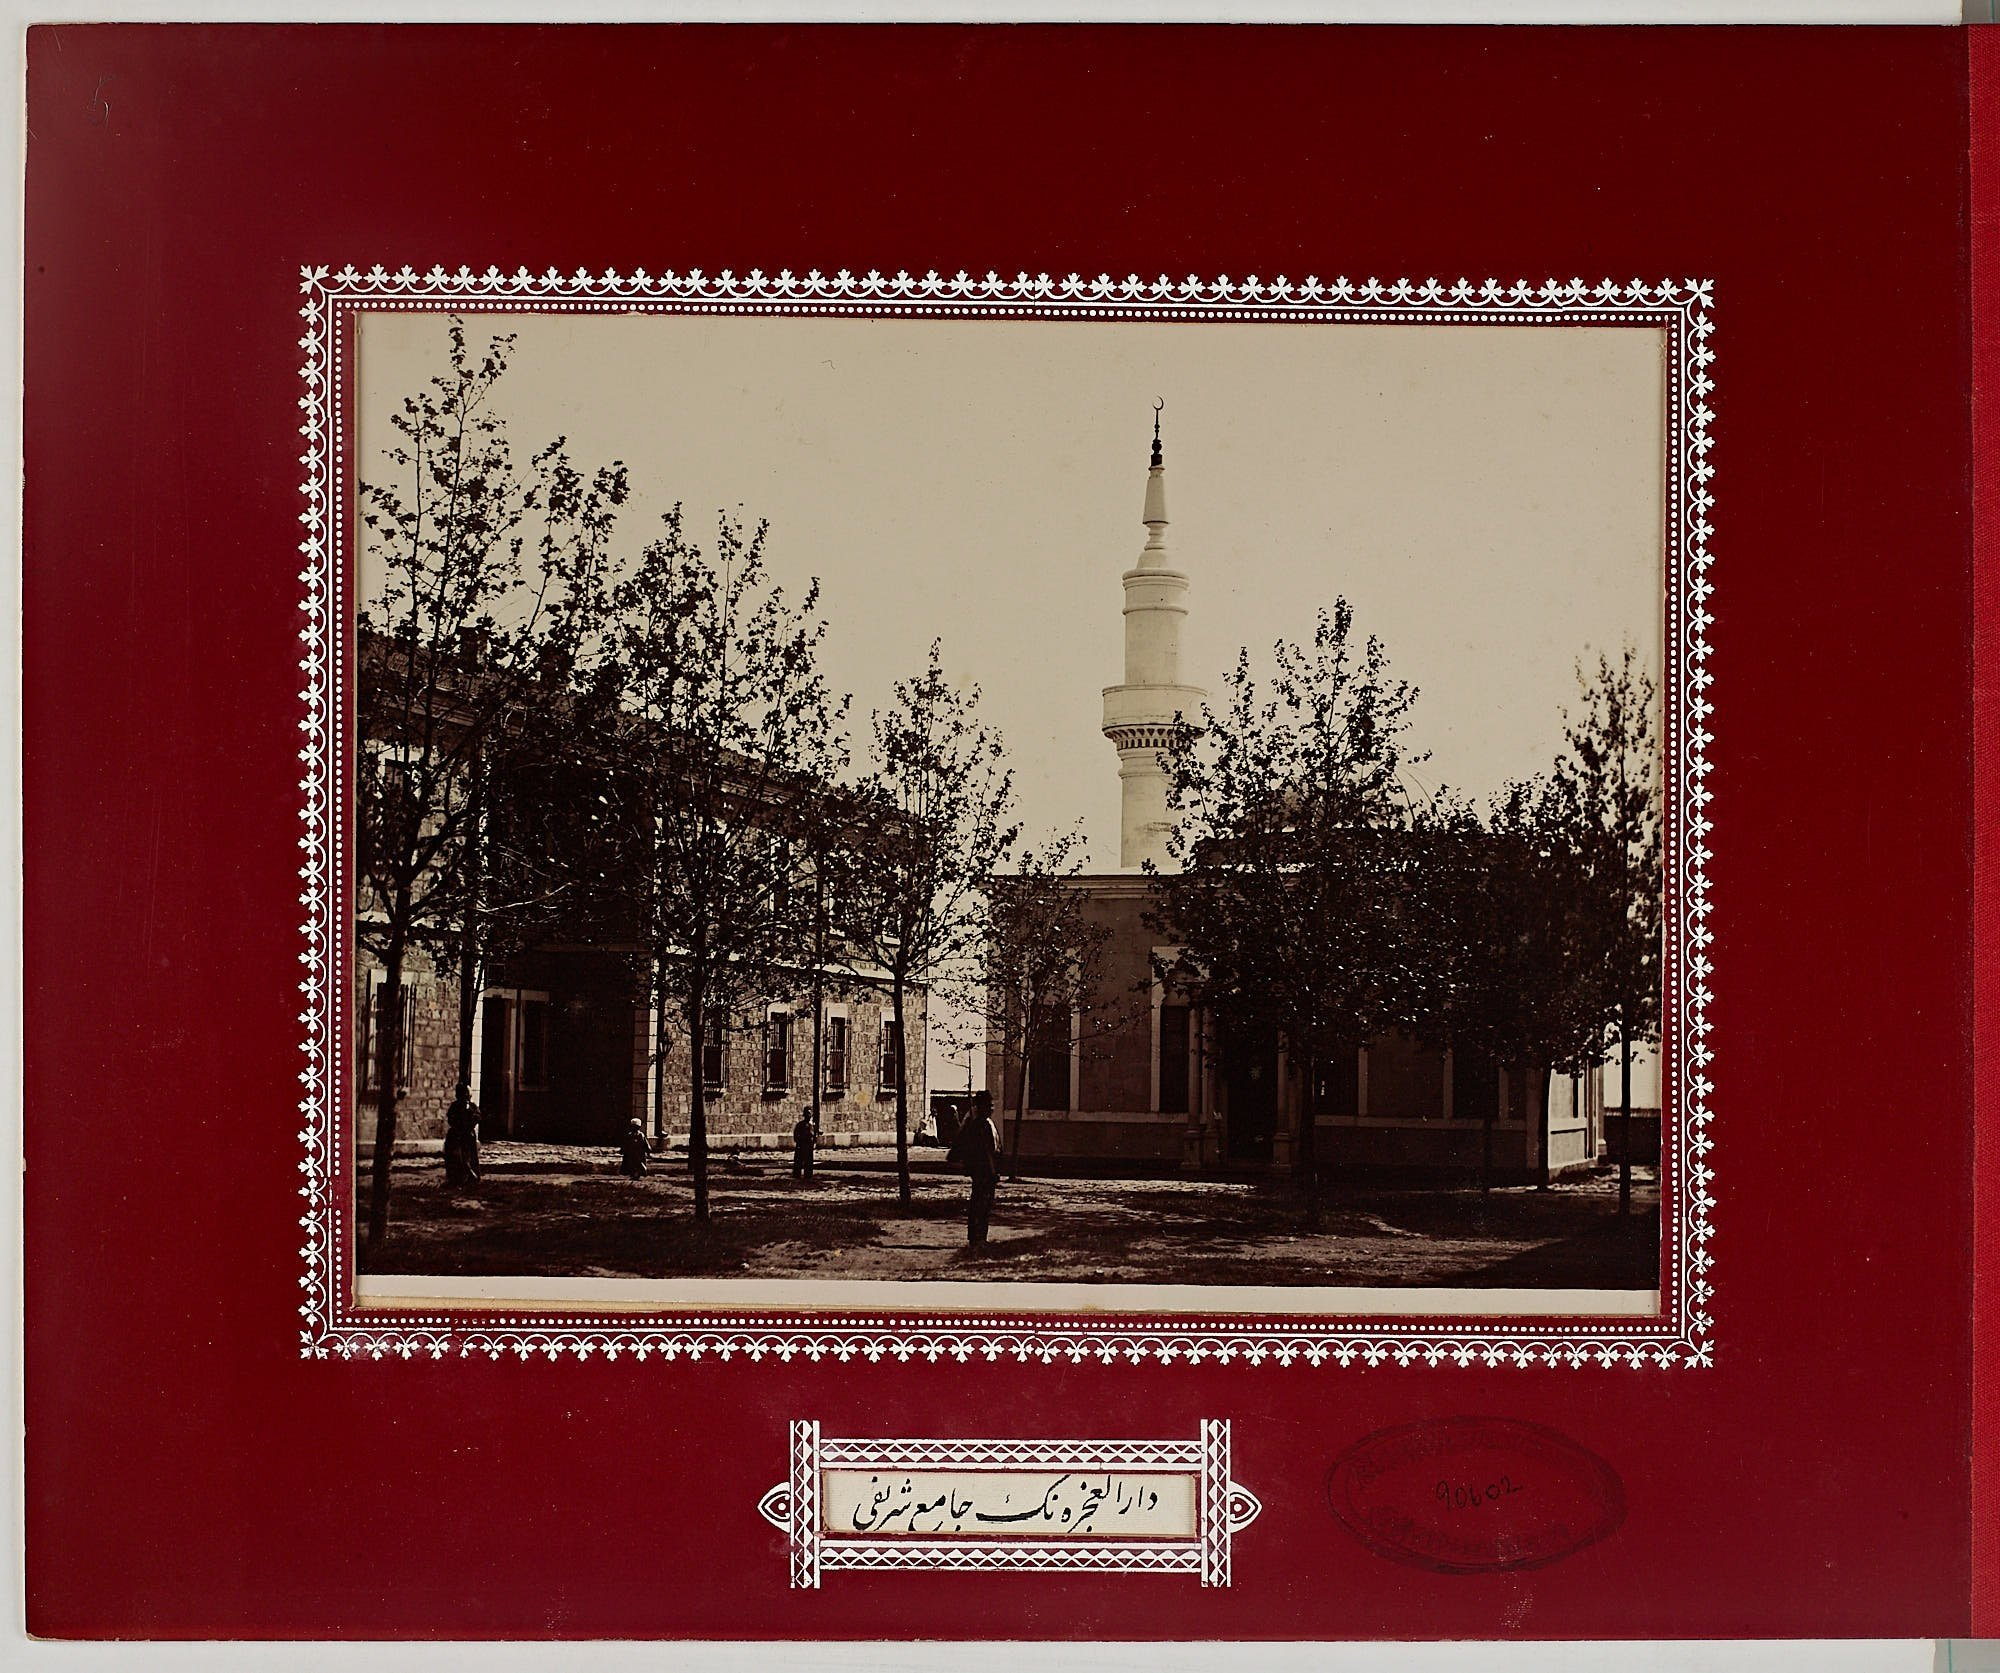 Darülaceze Mosque's photo by Sultan Abdülhamid II from his Yıldız Photography Collection. (Courtesy of Istanbul University)